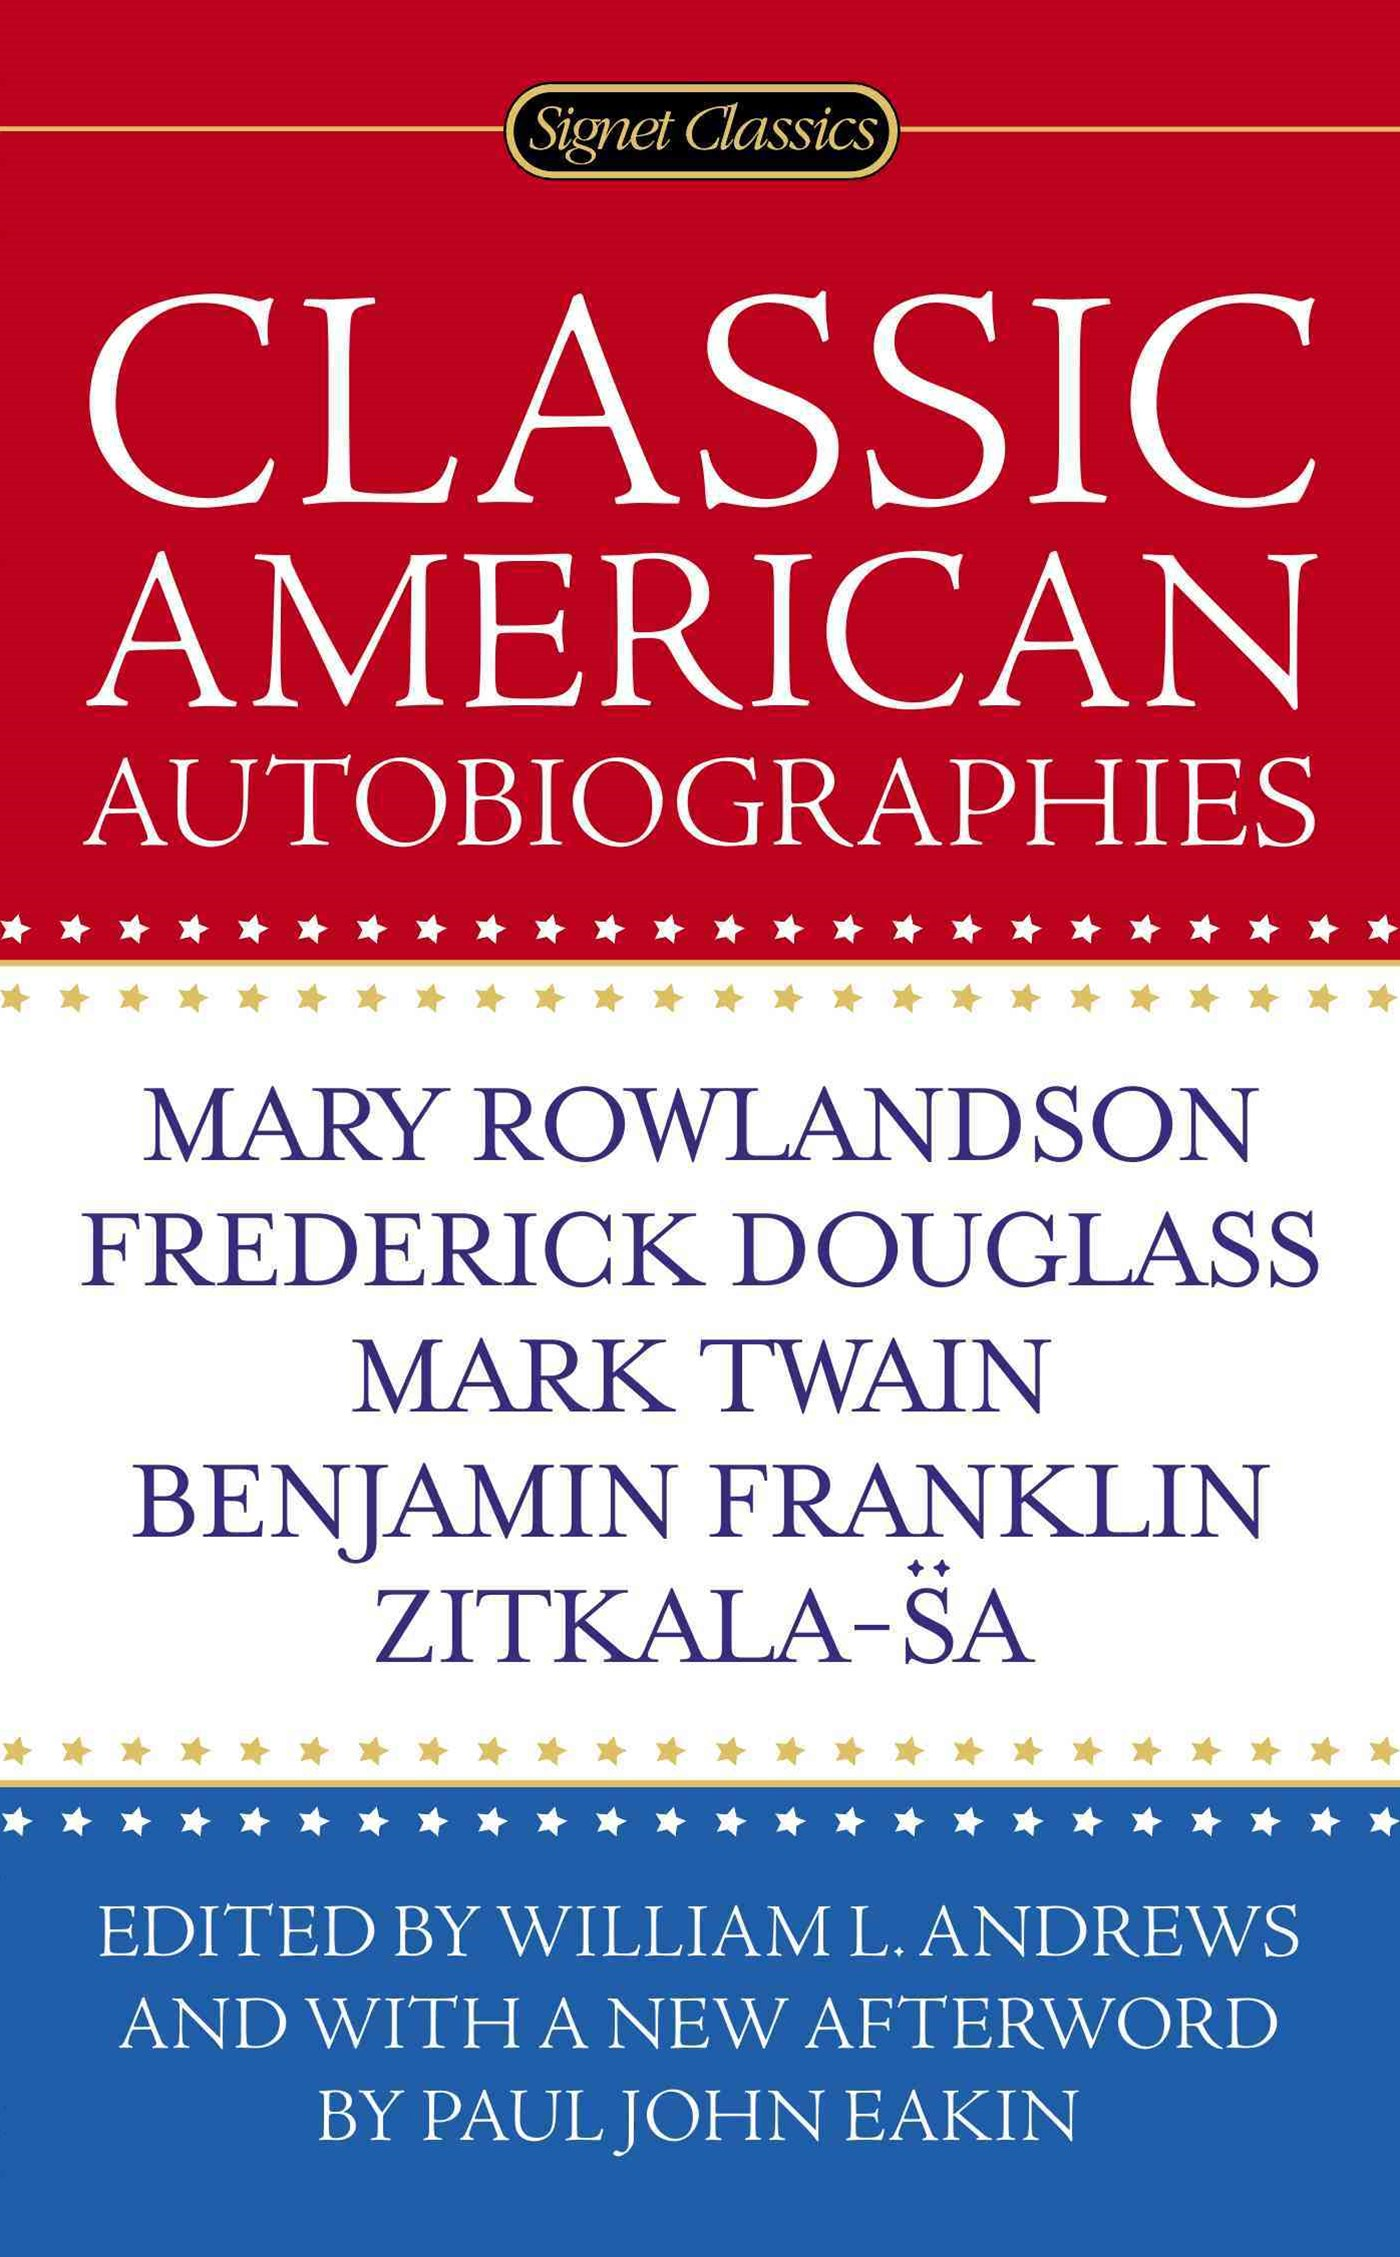 Classic American Autobiographies